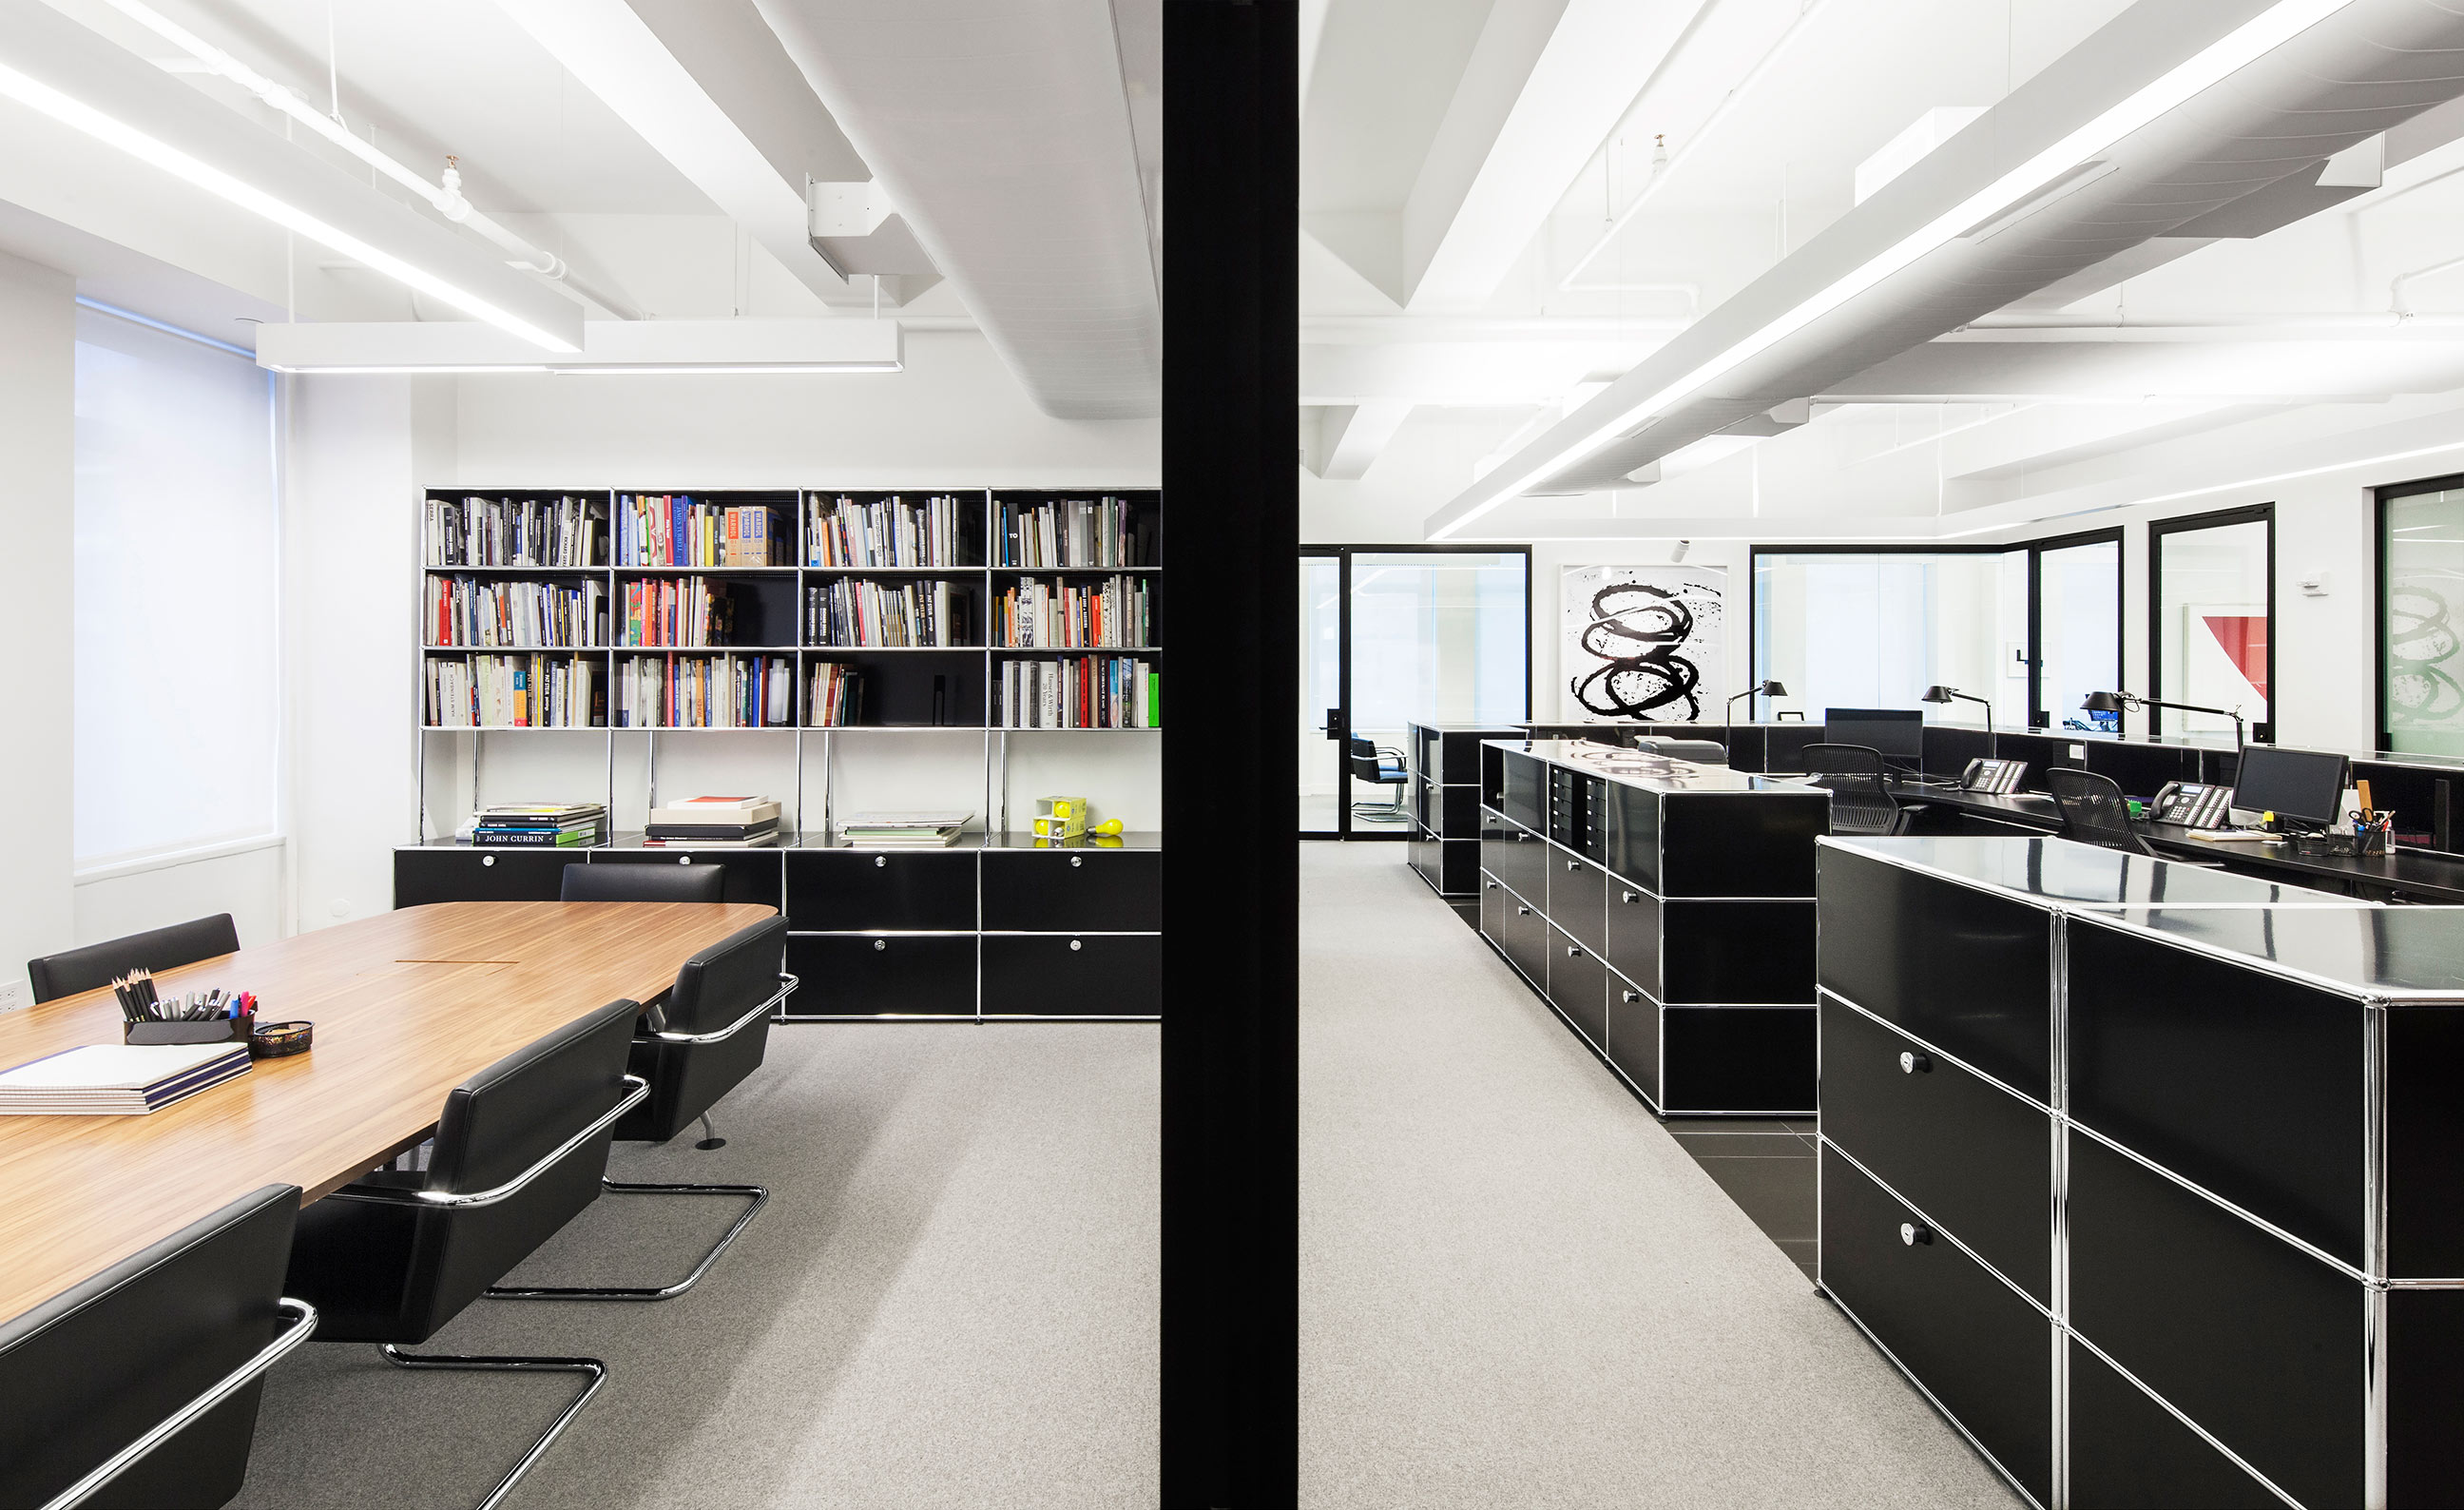 Ghiora-Aharoni-Design-Studio-Art-Law-Firm6